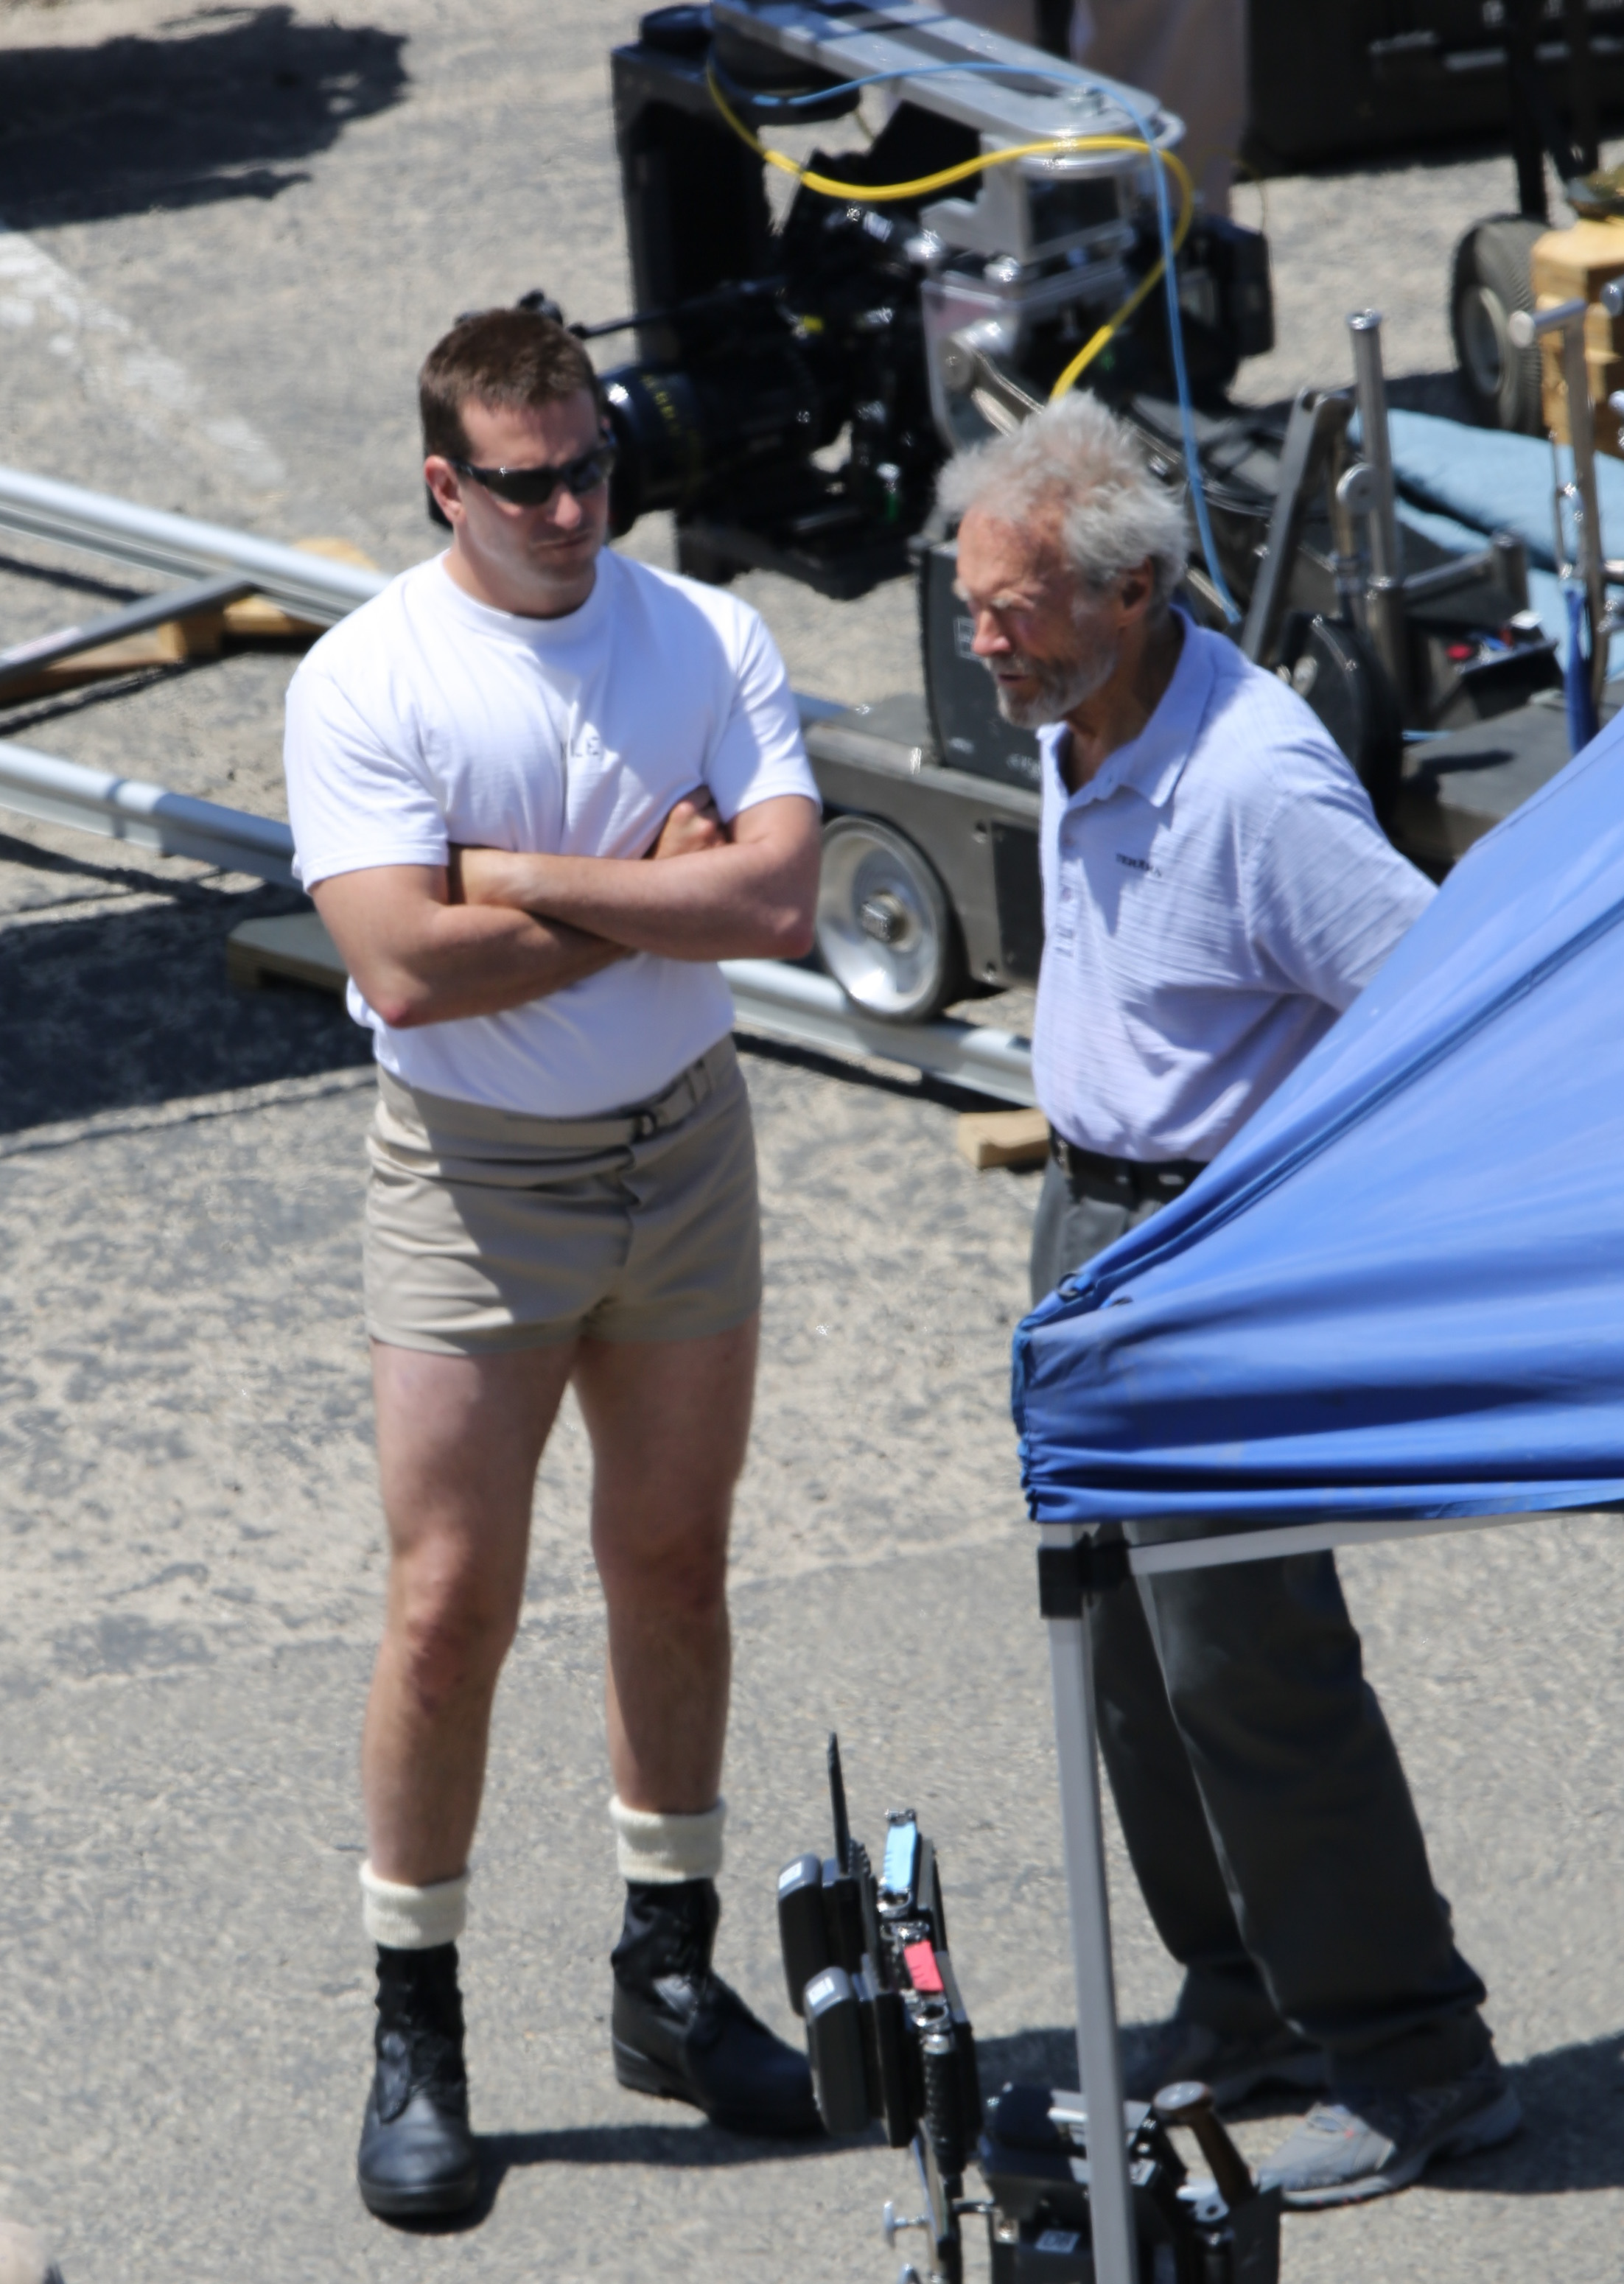 Bradley Cooper and Clint Eastwood on the set of 'American Sniper' in Malibu, California on June 4, 2014 in Los Angeles.